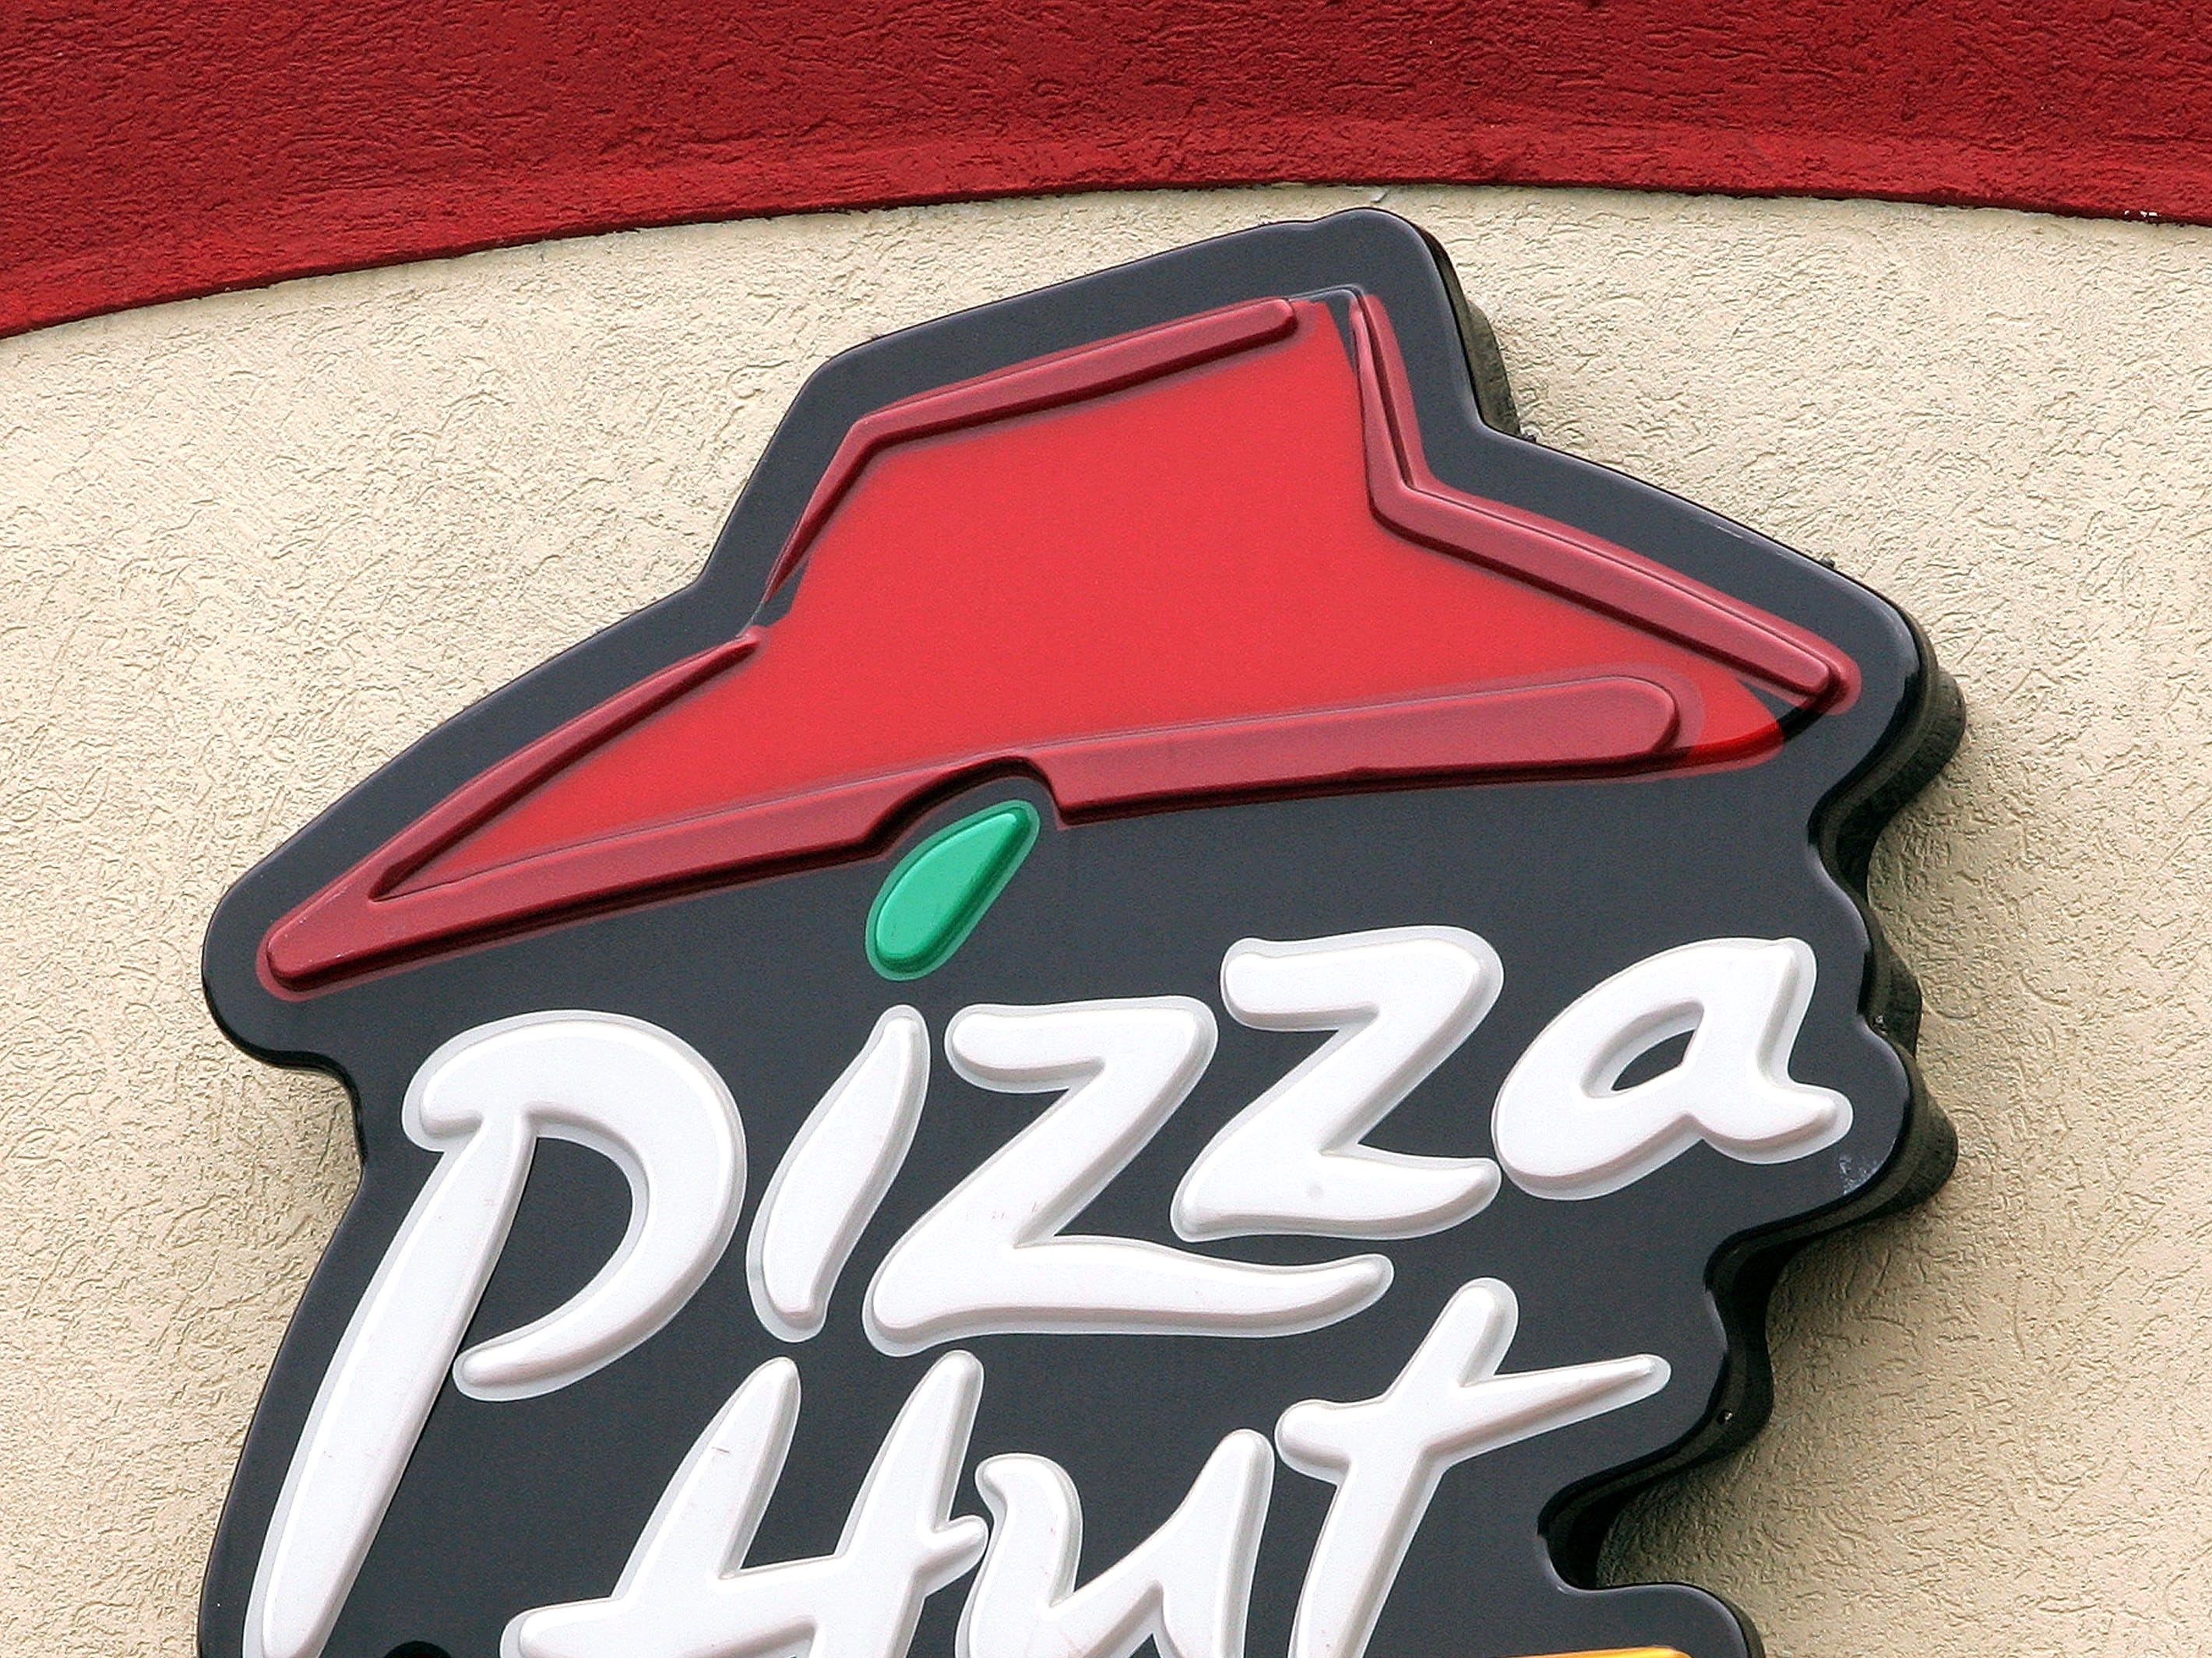 Pizza Hut, hiring 280. The pizza restaurant and delivery chain is adding jobs in the Phoenix area. More info: jobs.pizzahut.com.